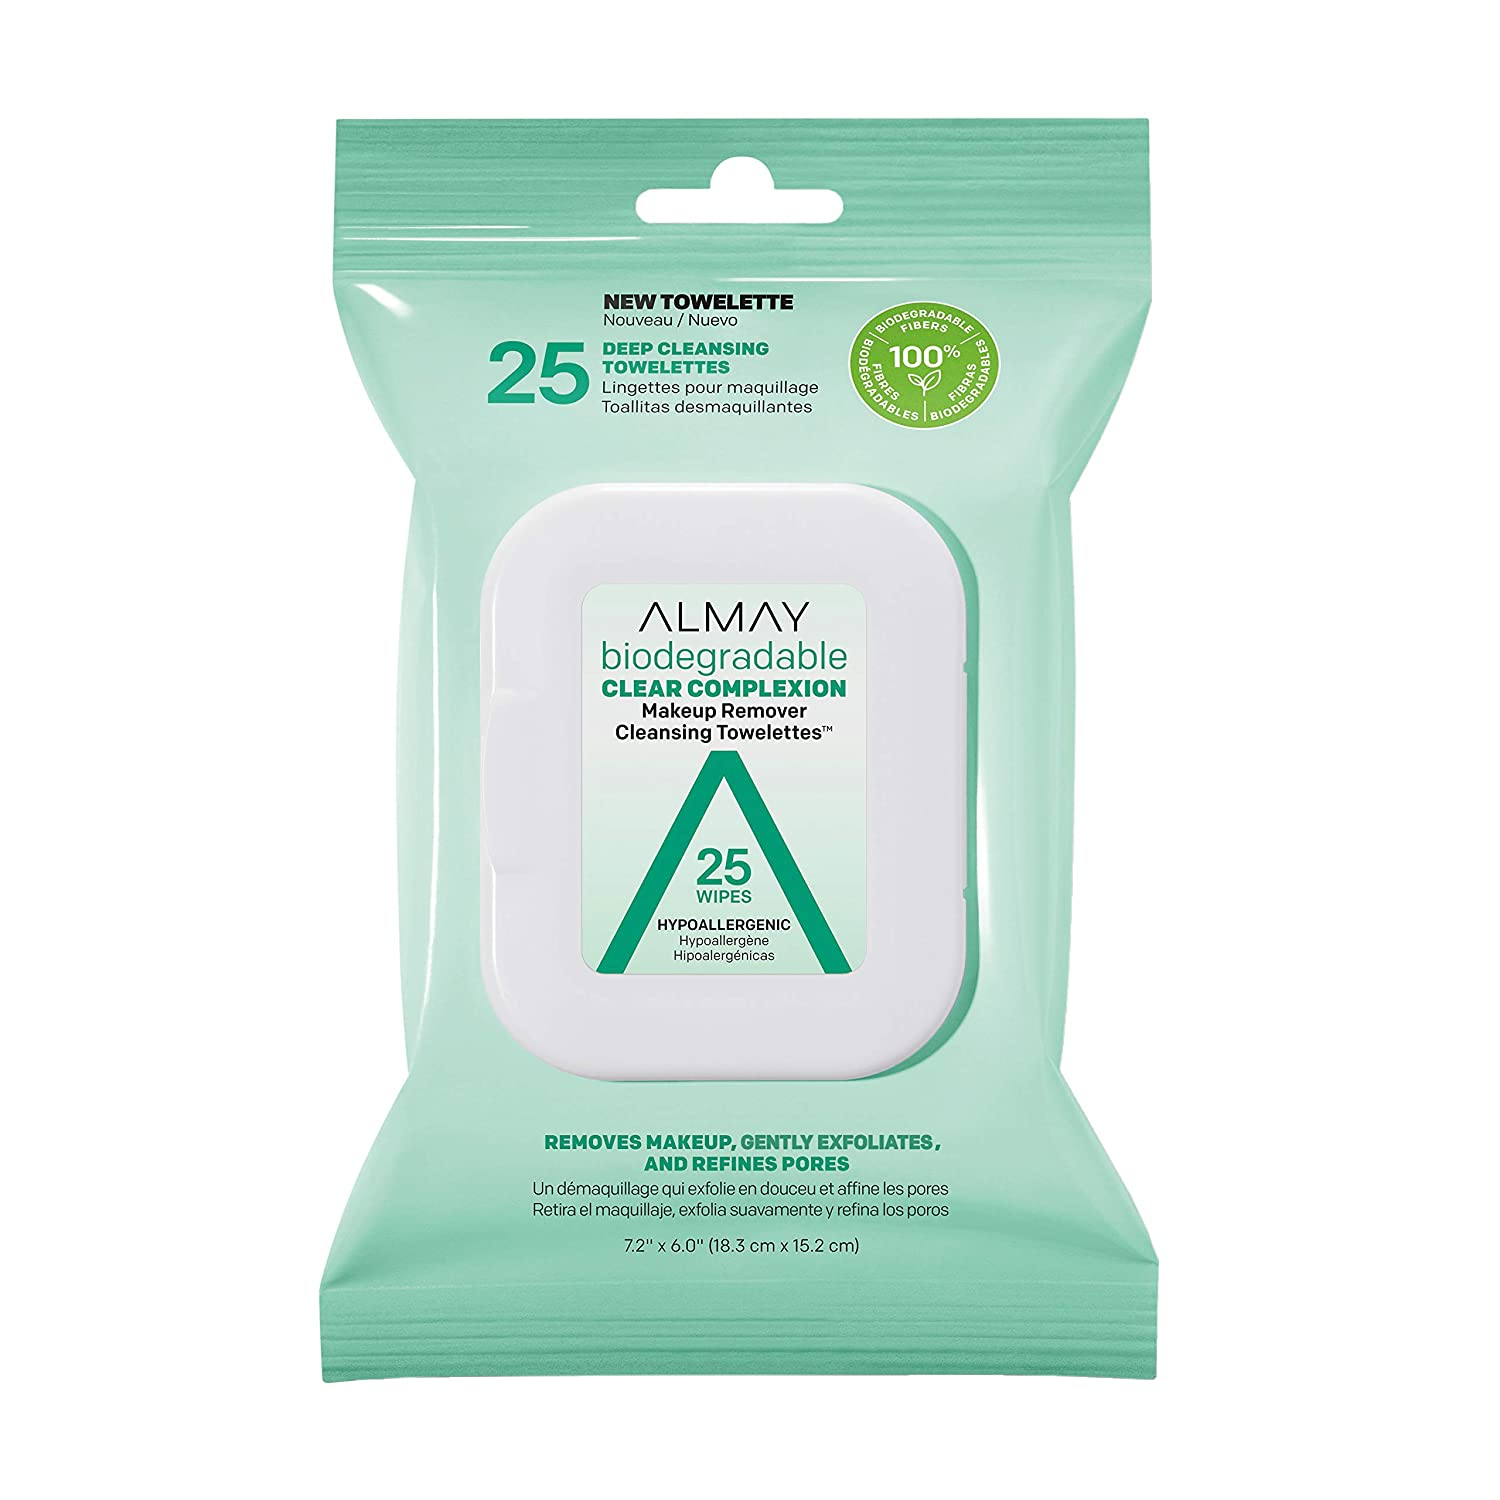 Almay Biodegradable Clear Complexion Makeup Remover Cleansing Towelettes, Hypoallergenic, Cruelty Free, Fragrance Free, Dermatologist Tested, 25 Makeup Remover Wipes